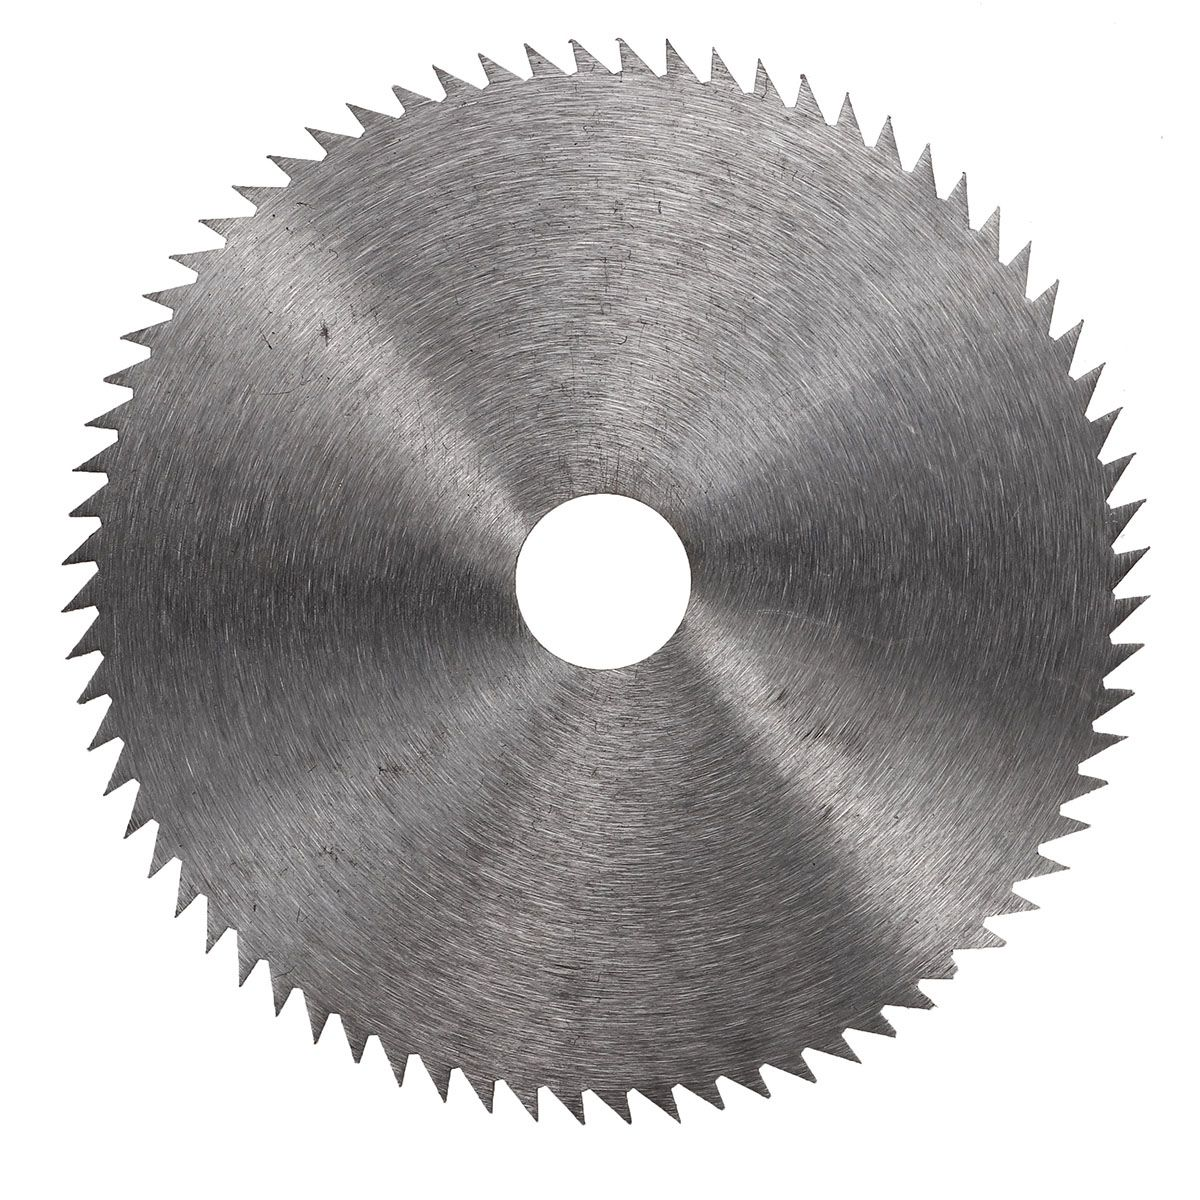 5 Inch Circular Saw Blade Bore Diameter 125mm Wheel Cutting Disc 125mm Wheel Cutting Disc For Mini Table Saw Woodworking